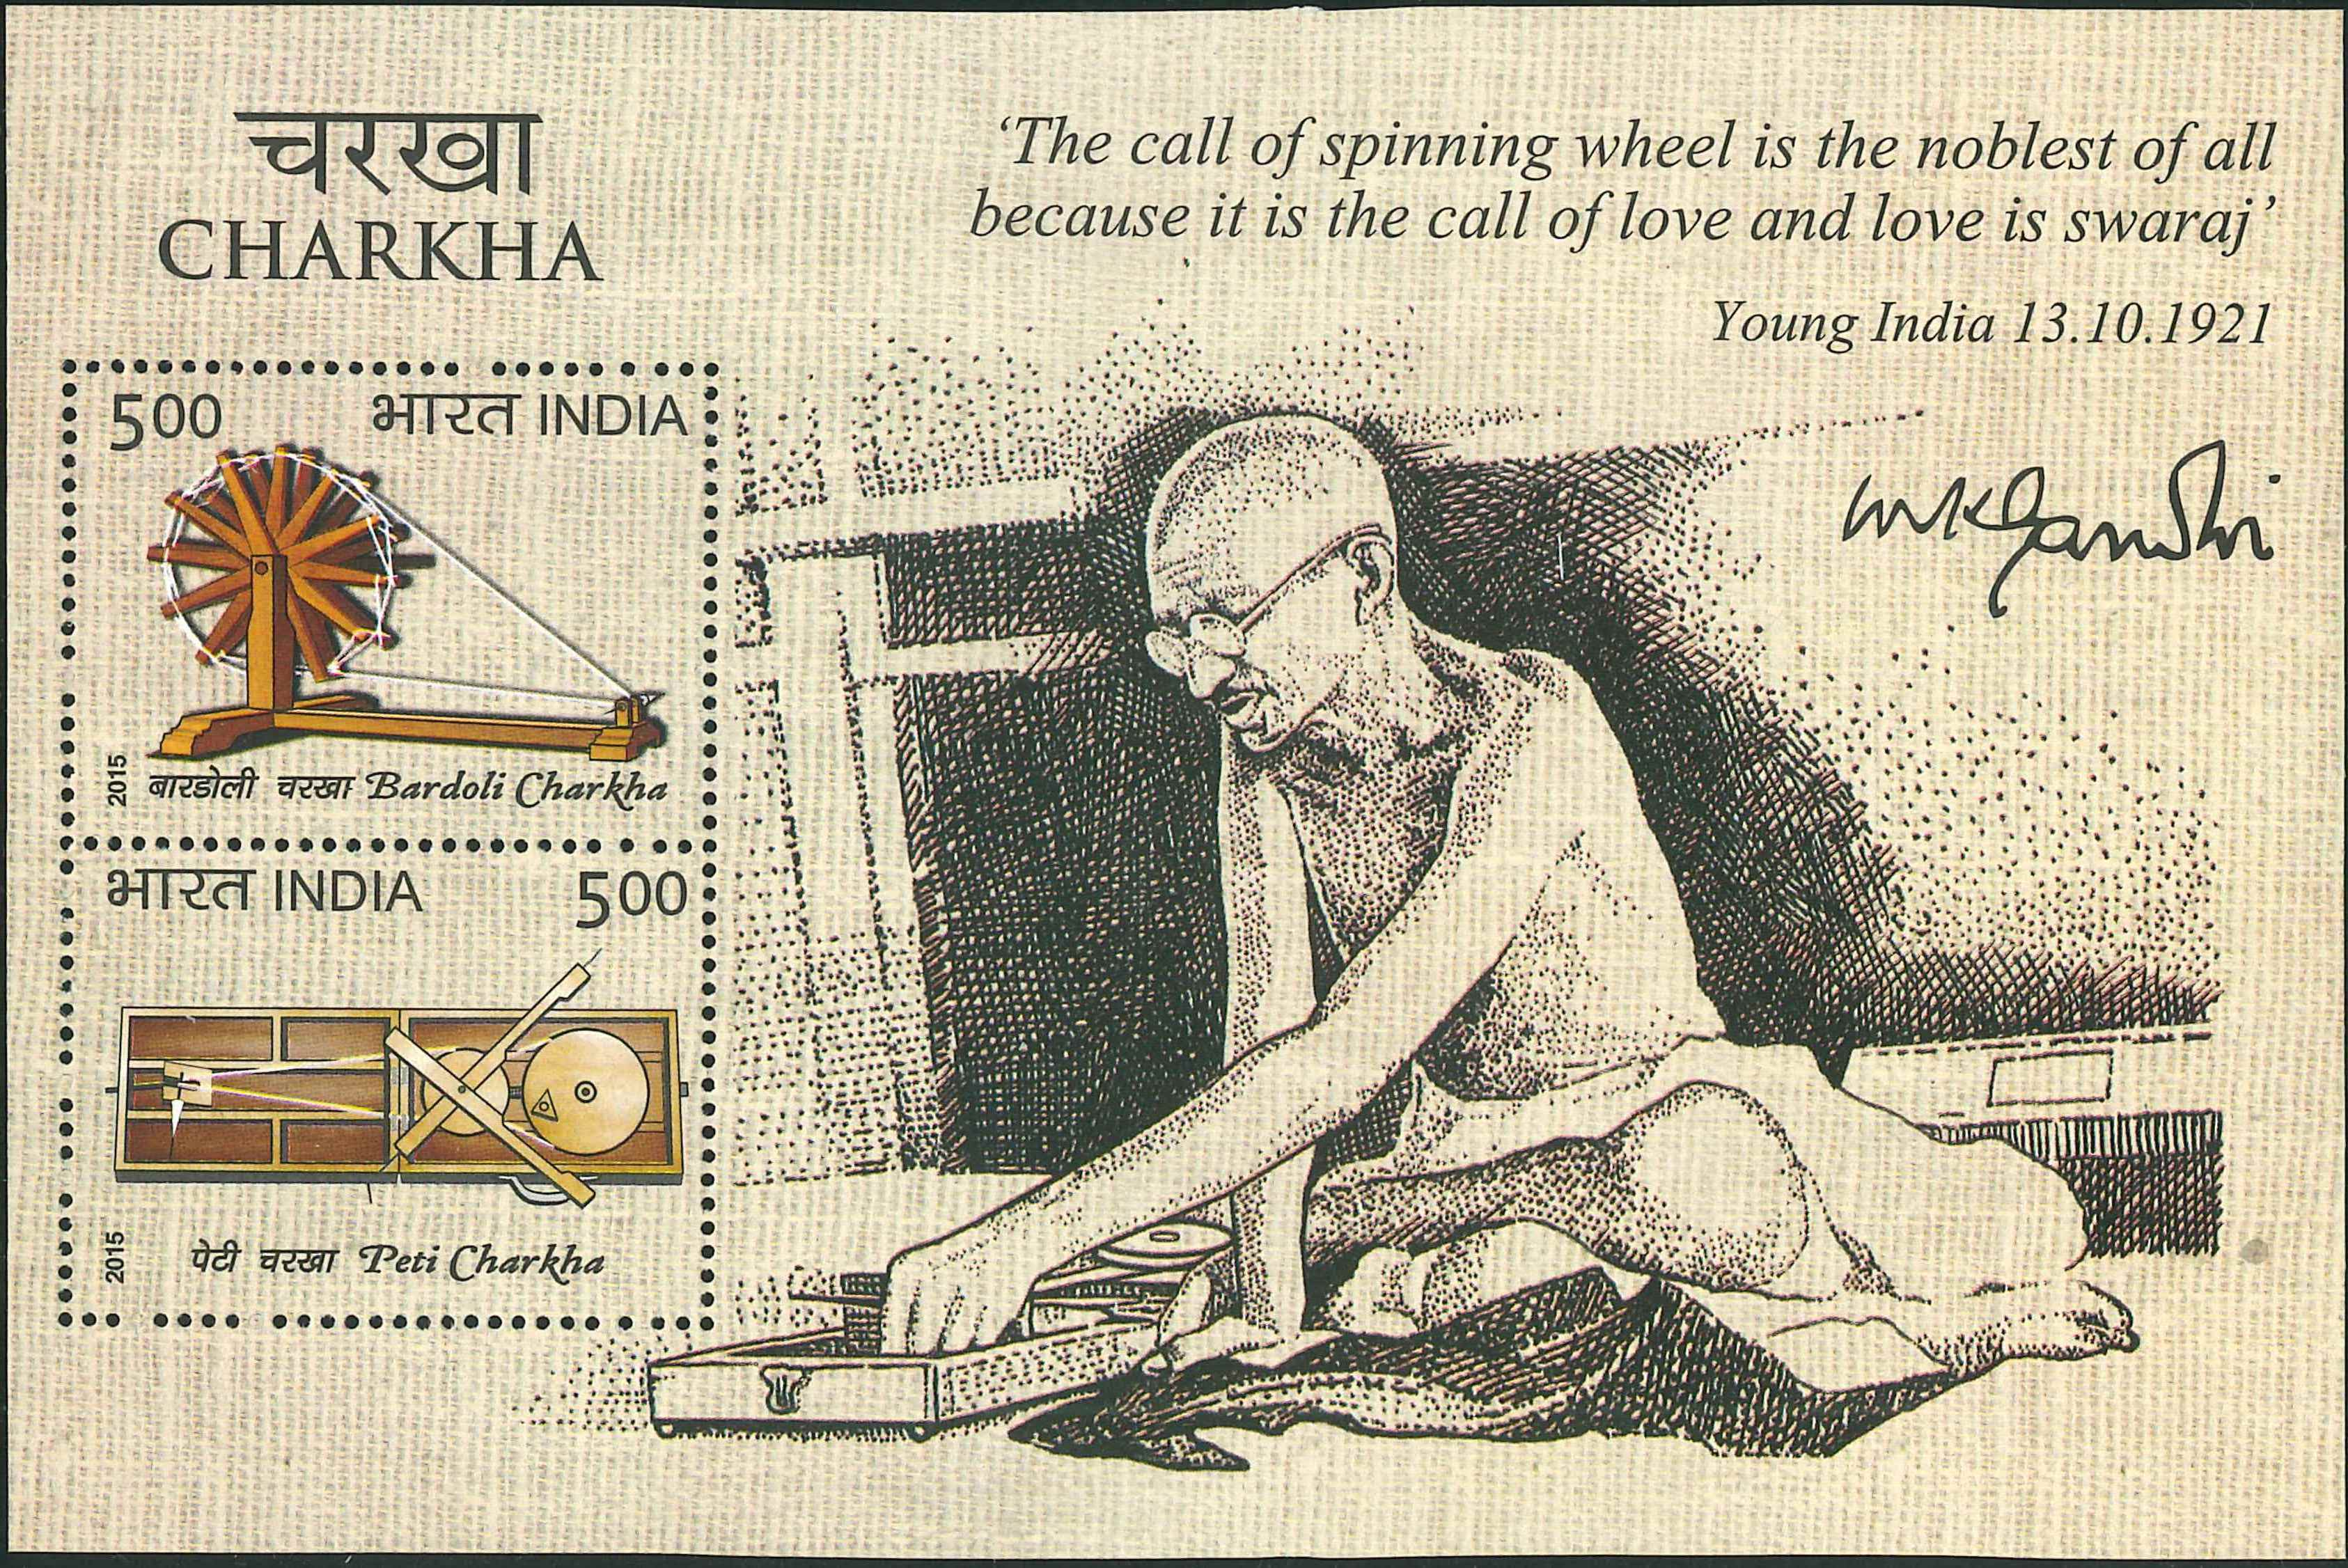 Bardoli and Peti Charkha with Mahatma Gandhi